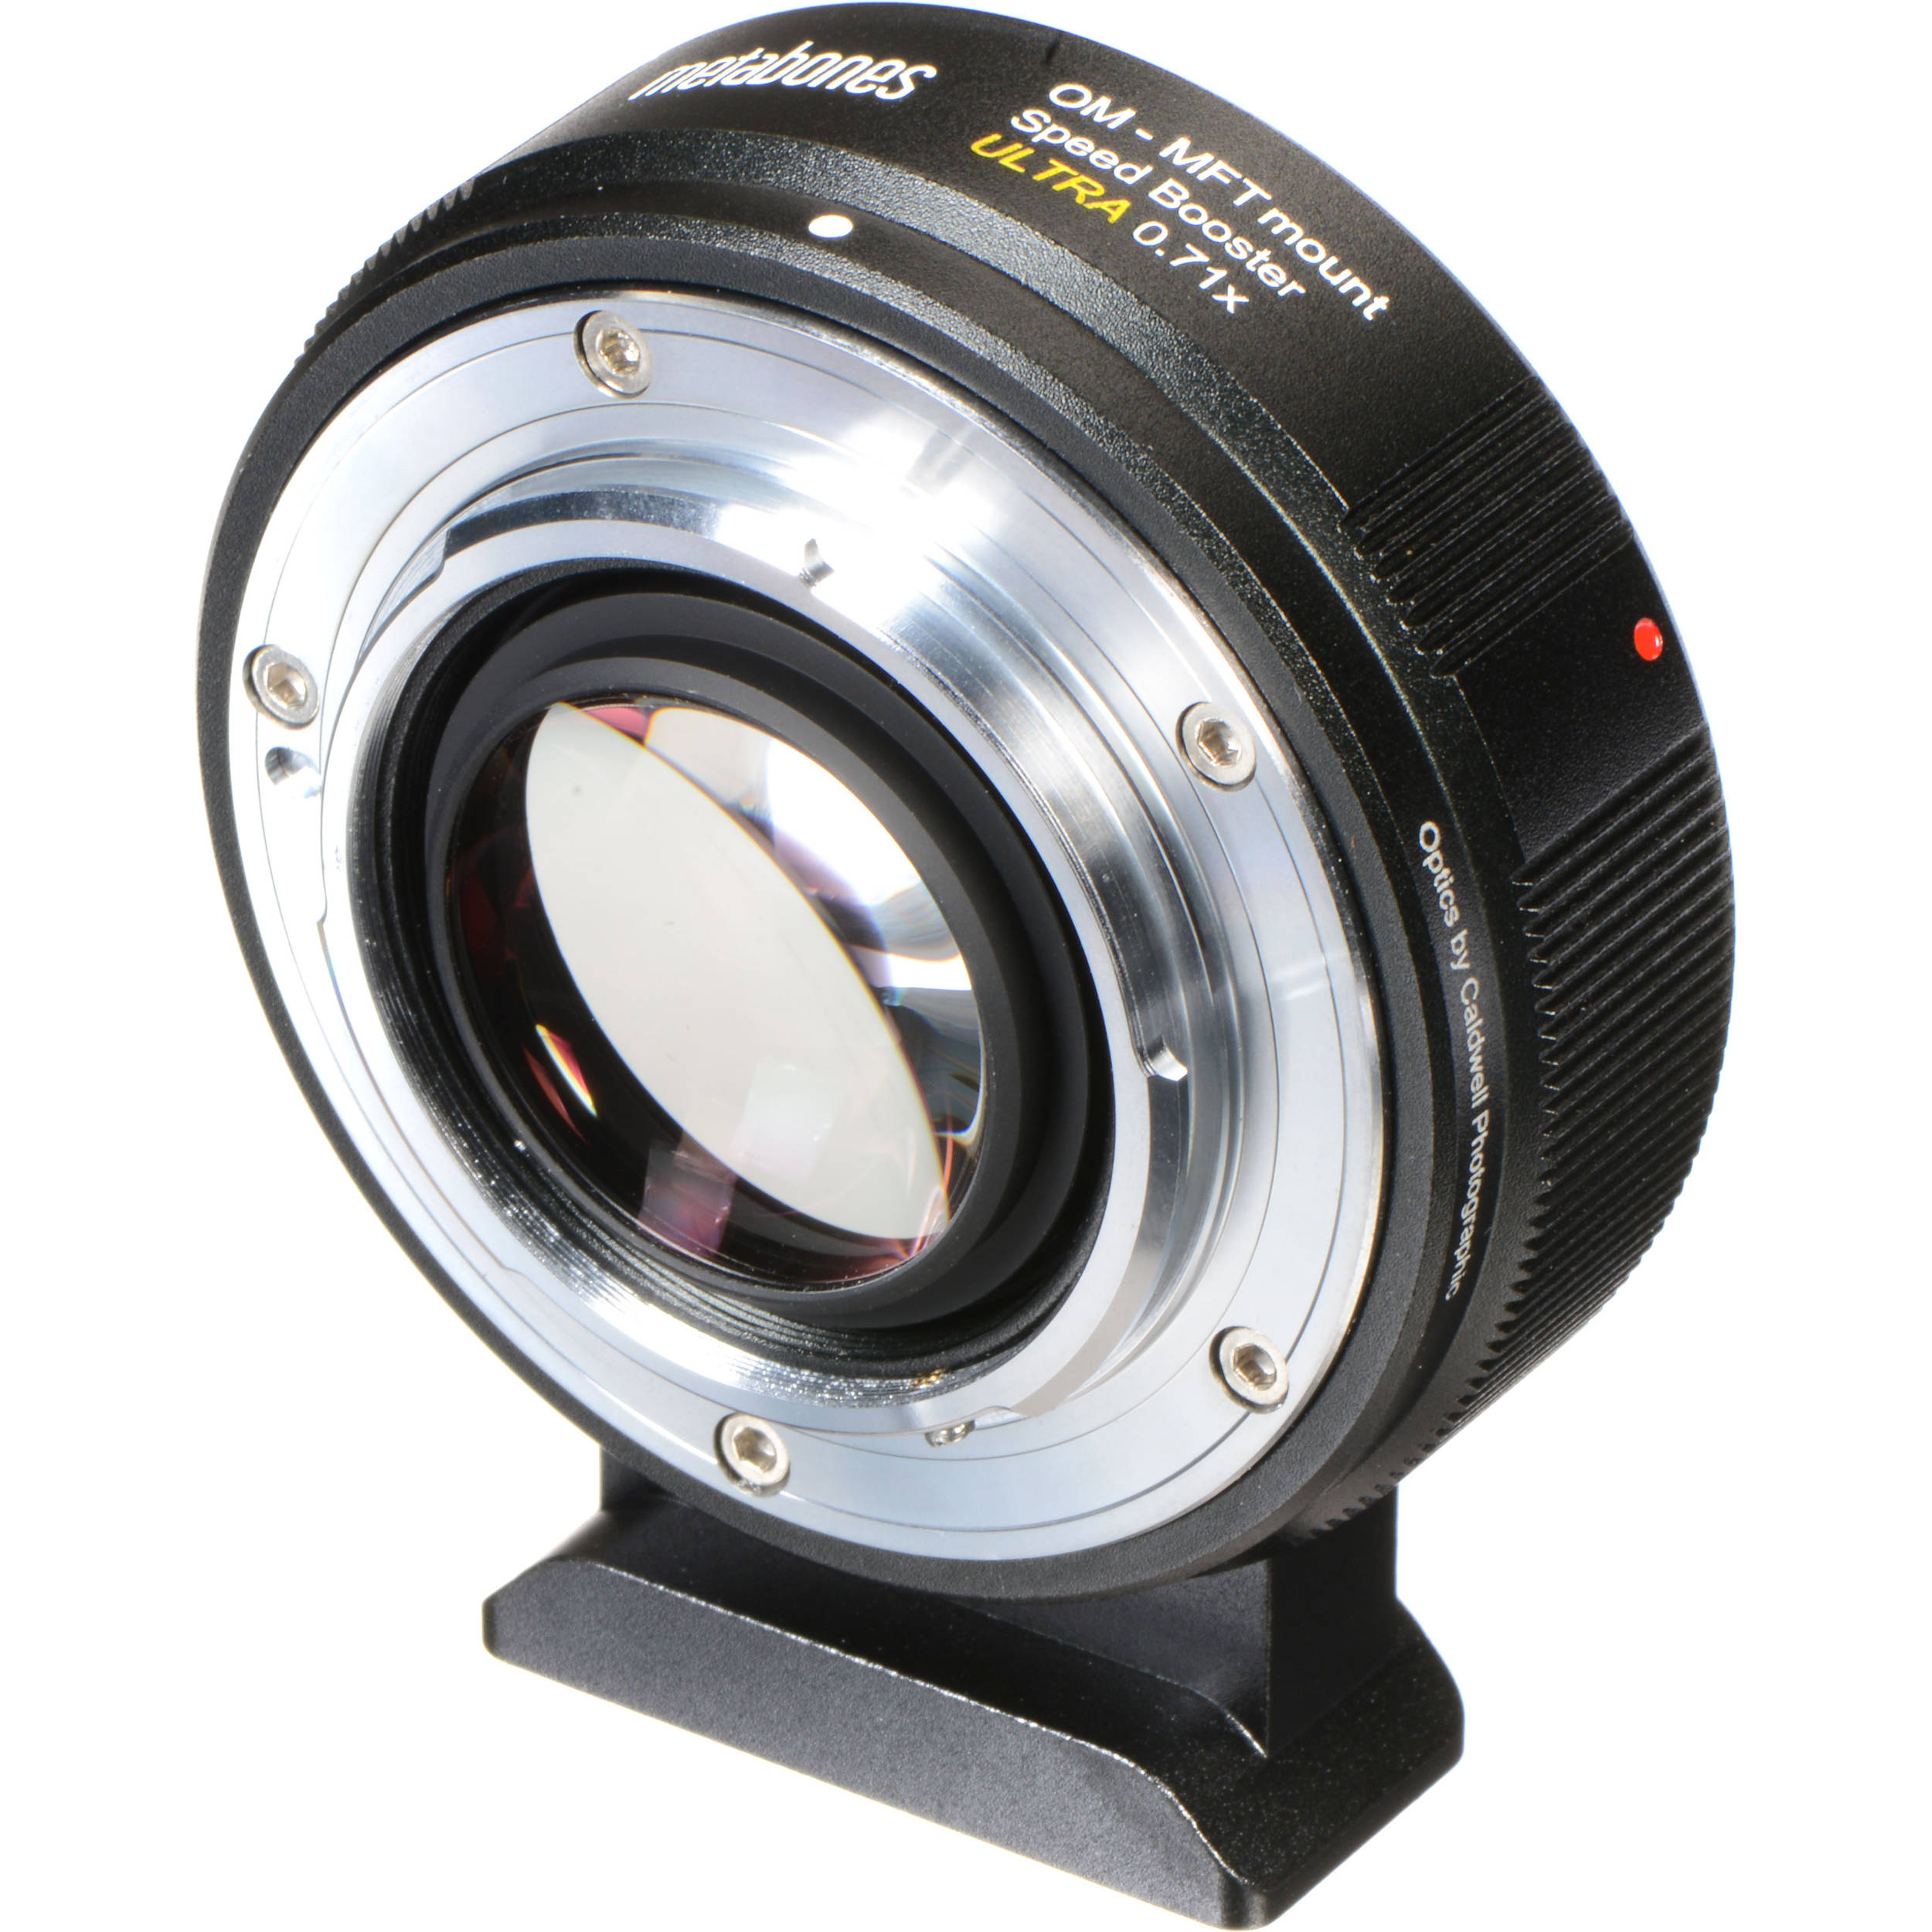 metabones speed boster